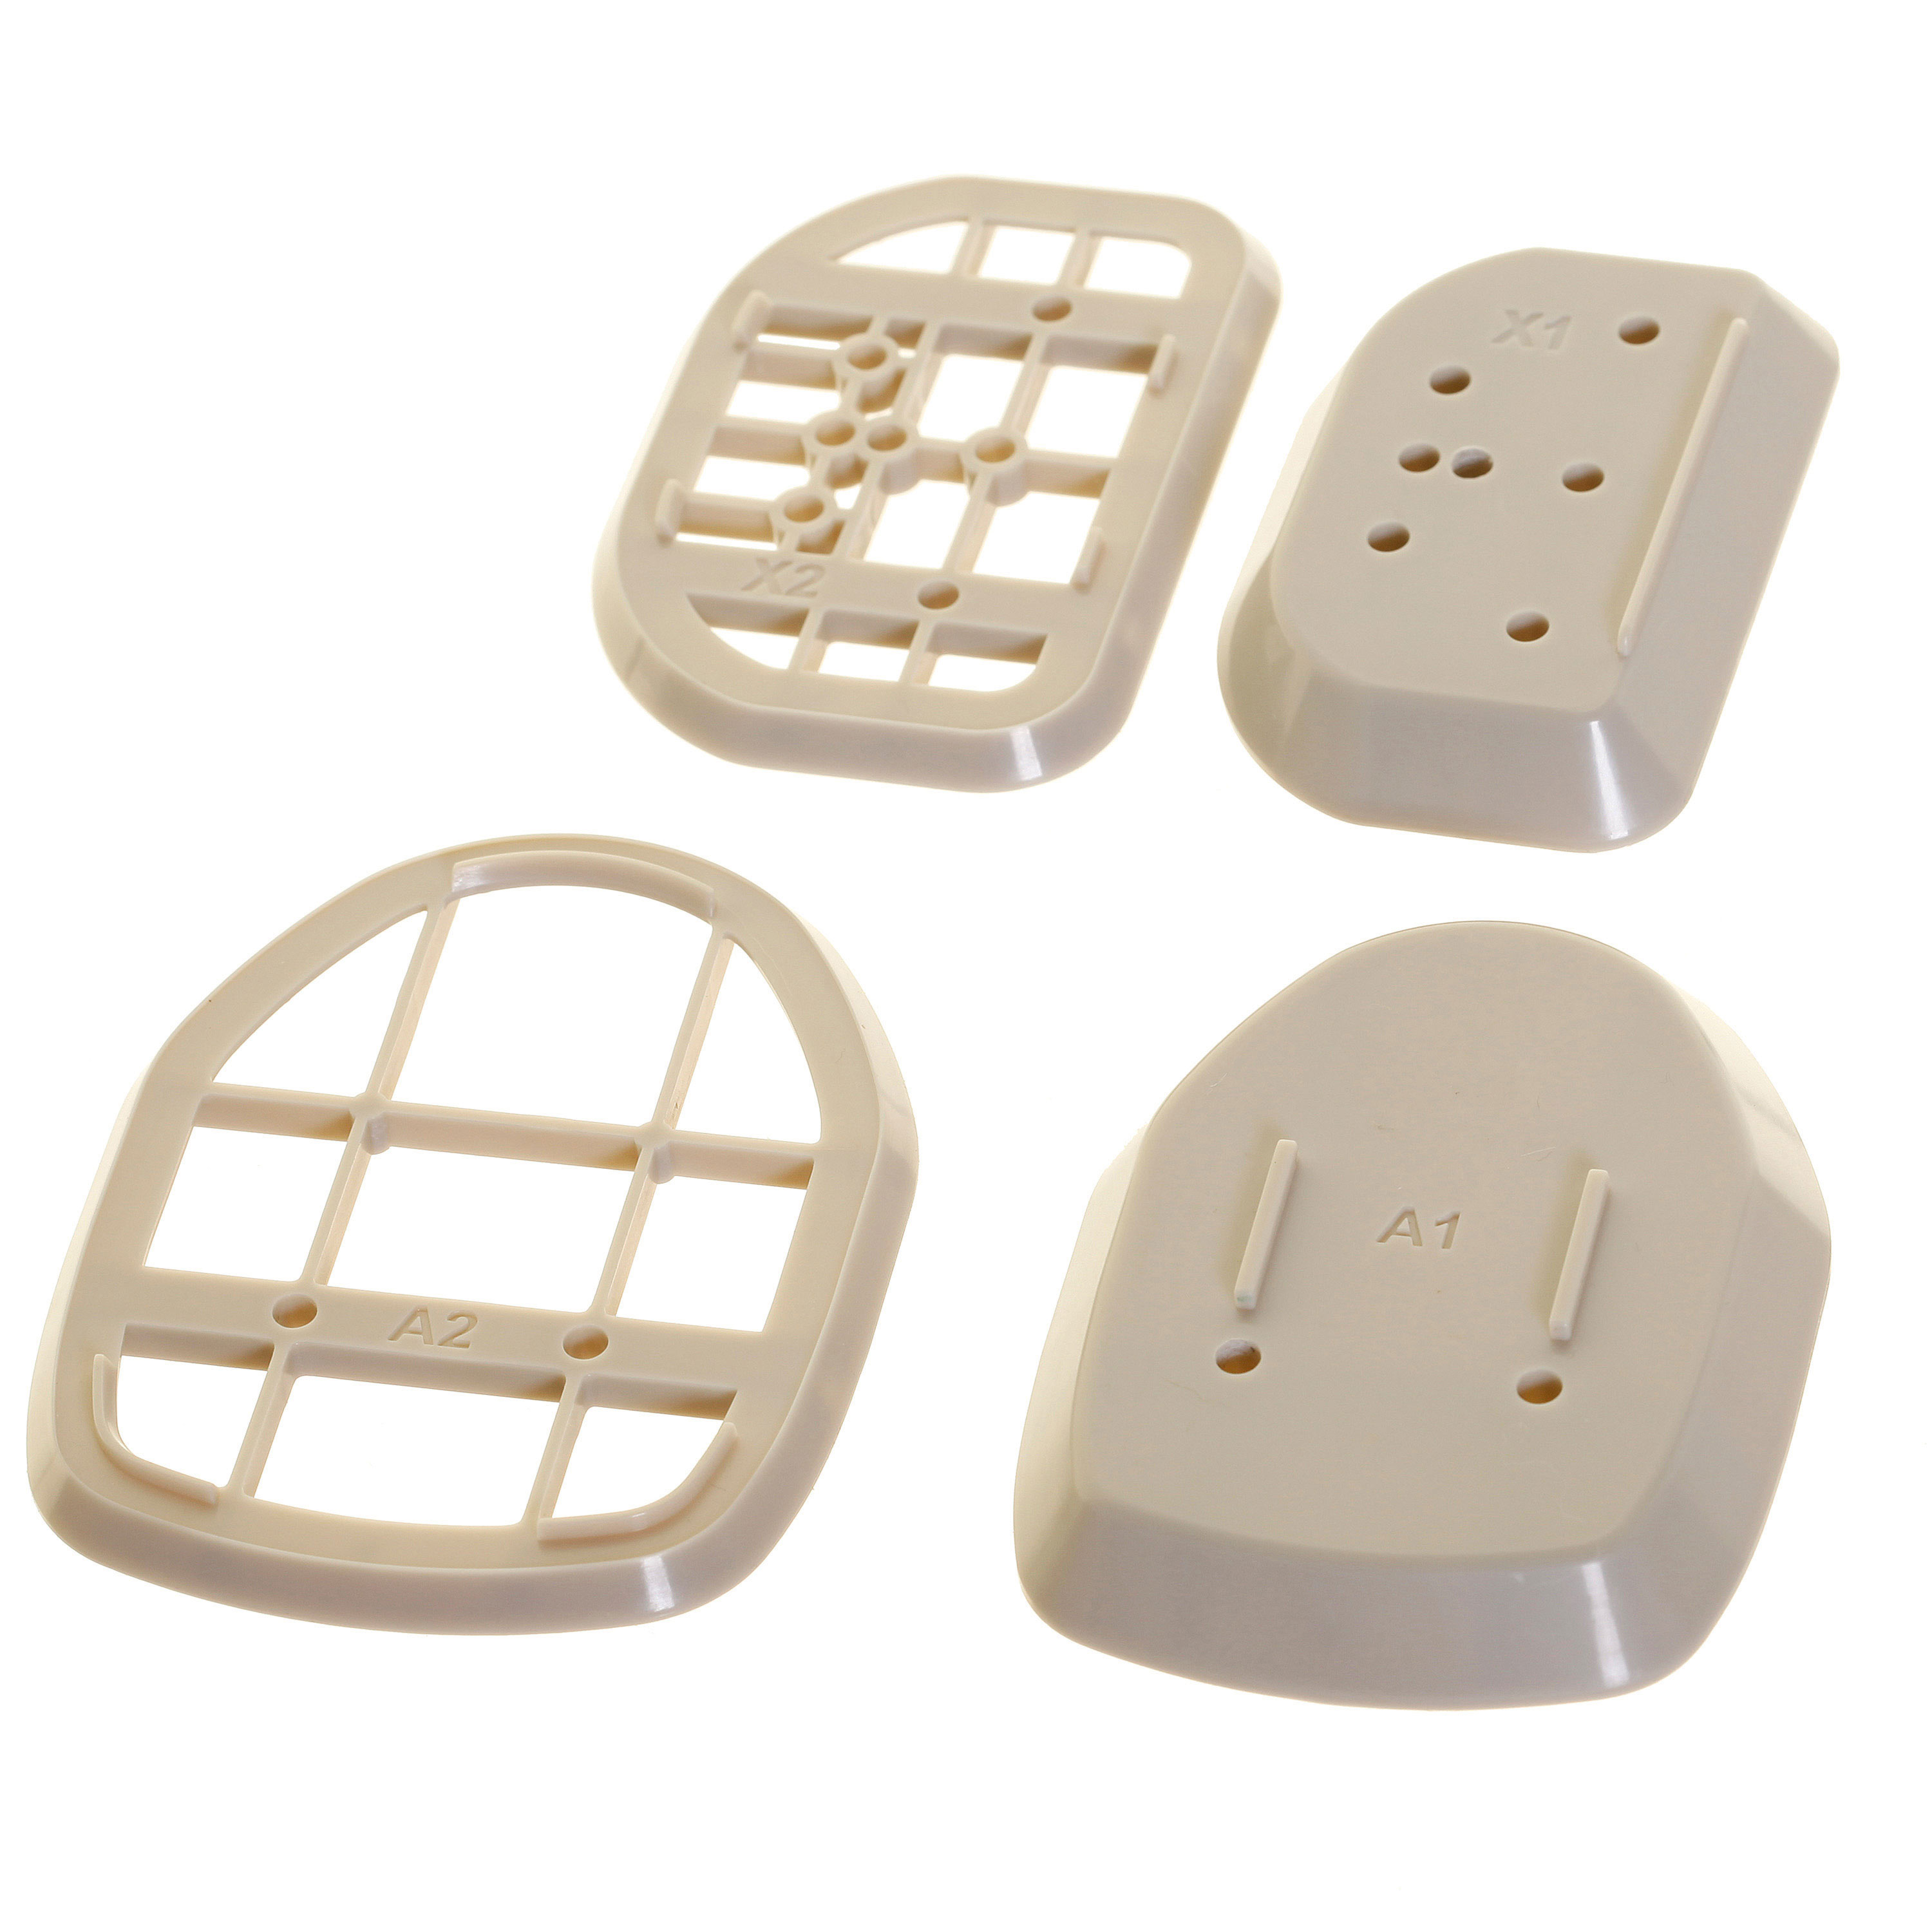 Baseboard Spacer Kit for Dream Baby Retractable Gate L821 Beige